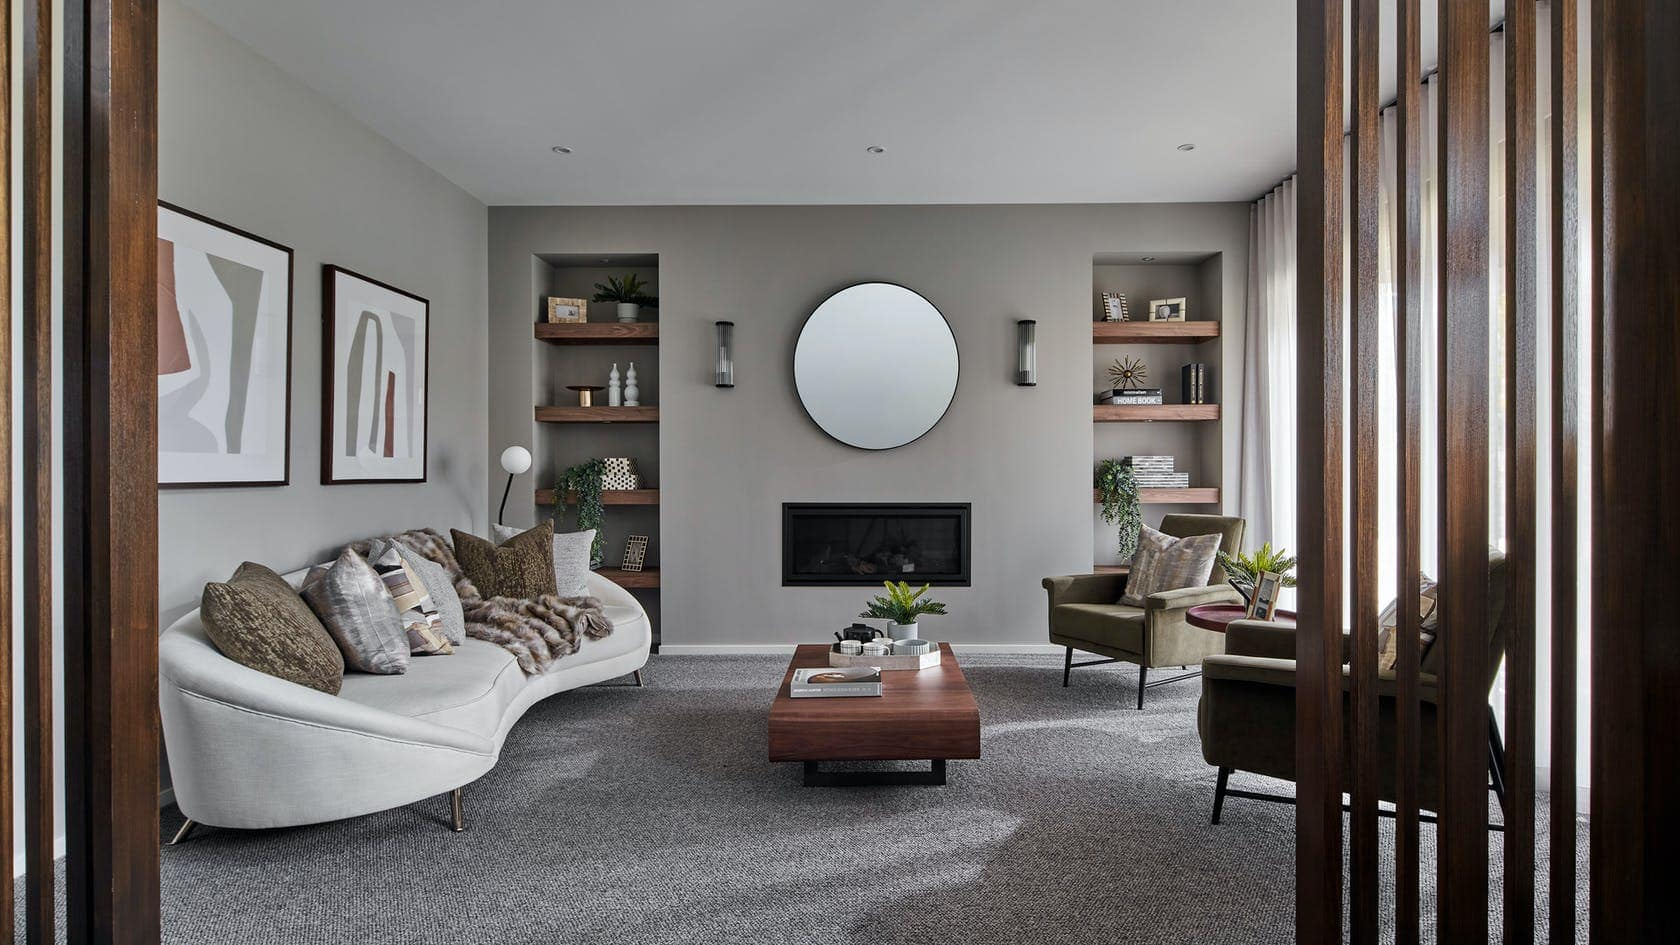 formal living room with curved sofa grey walls and fireplace with round mirror above